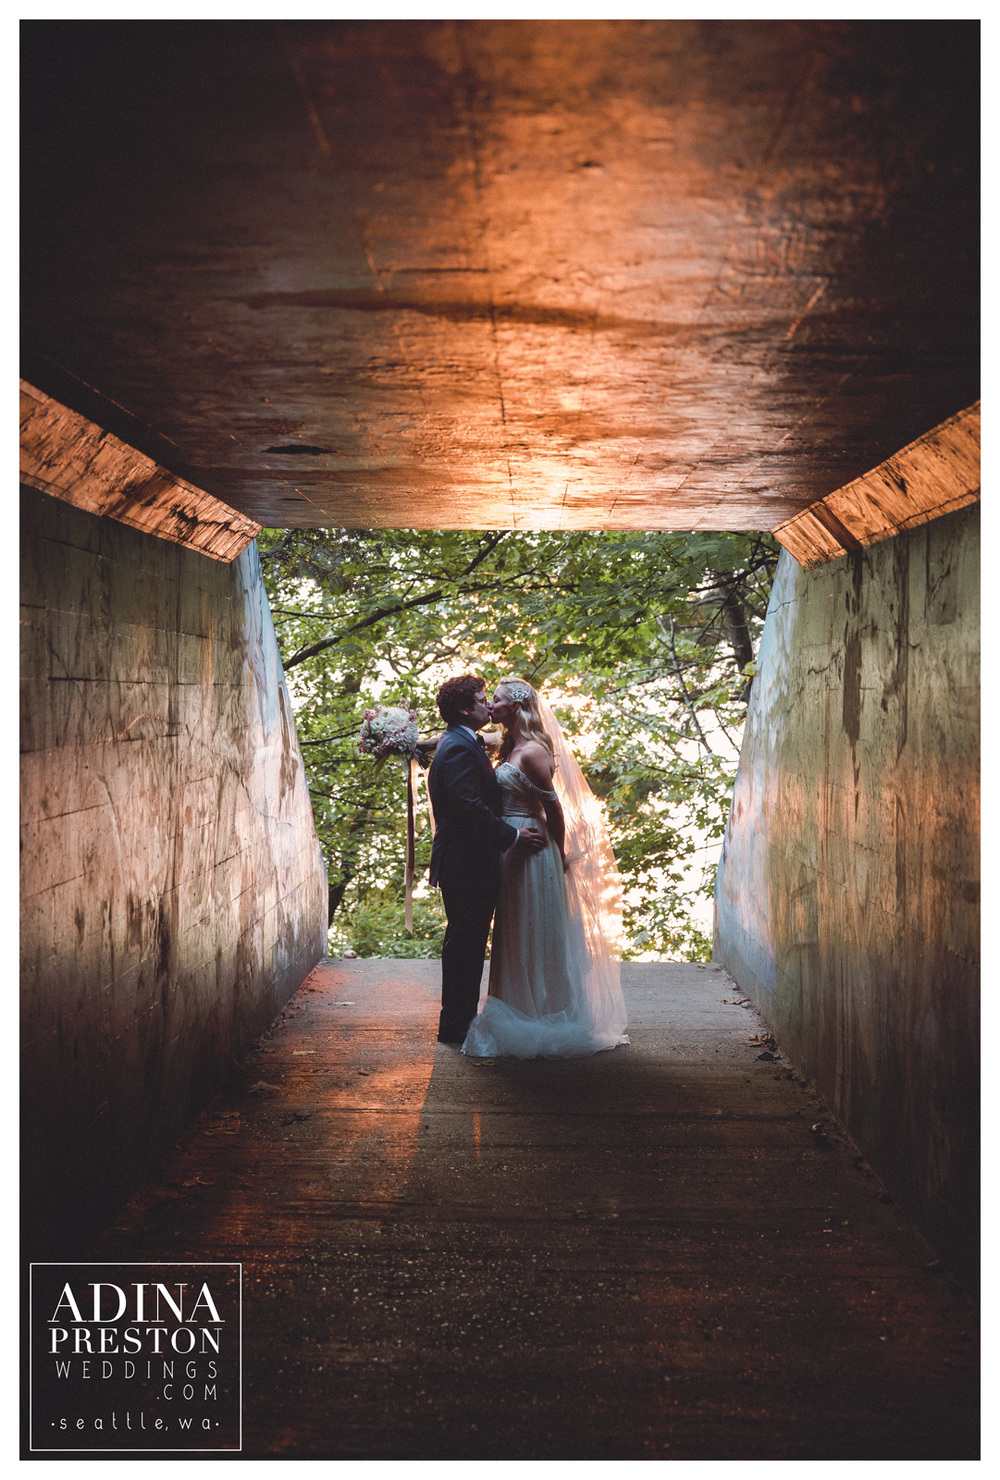 Courtney5_Adina+Preston+Weddings_Seattle+Weddings_Seattle+Wedding+Photographer.JPG